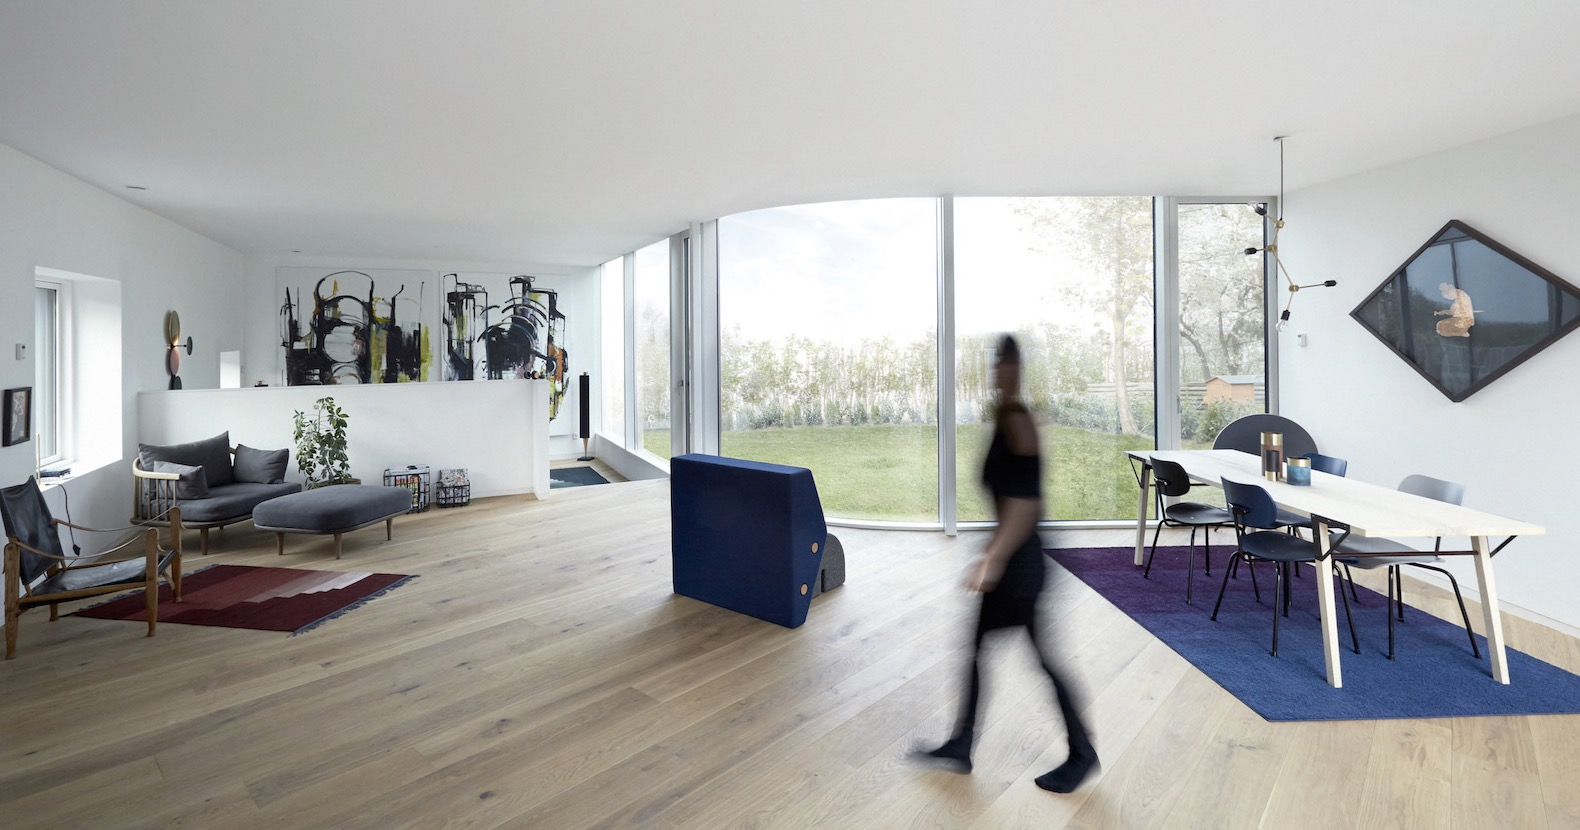 Villa One is an affordable prefab home that accommodates a growing family